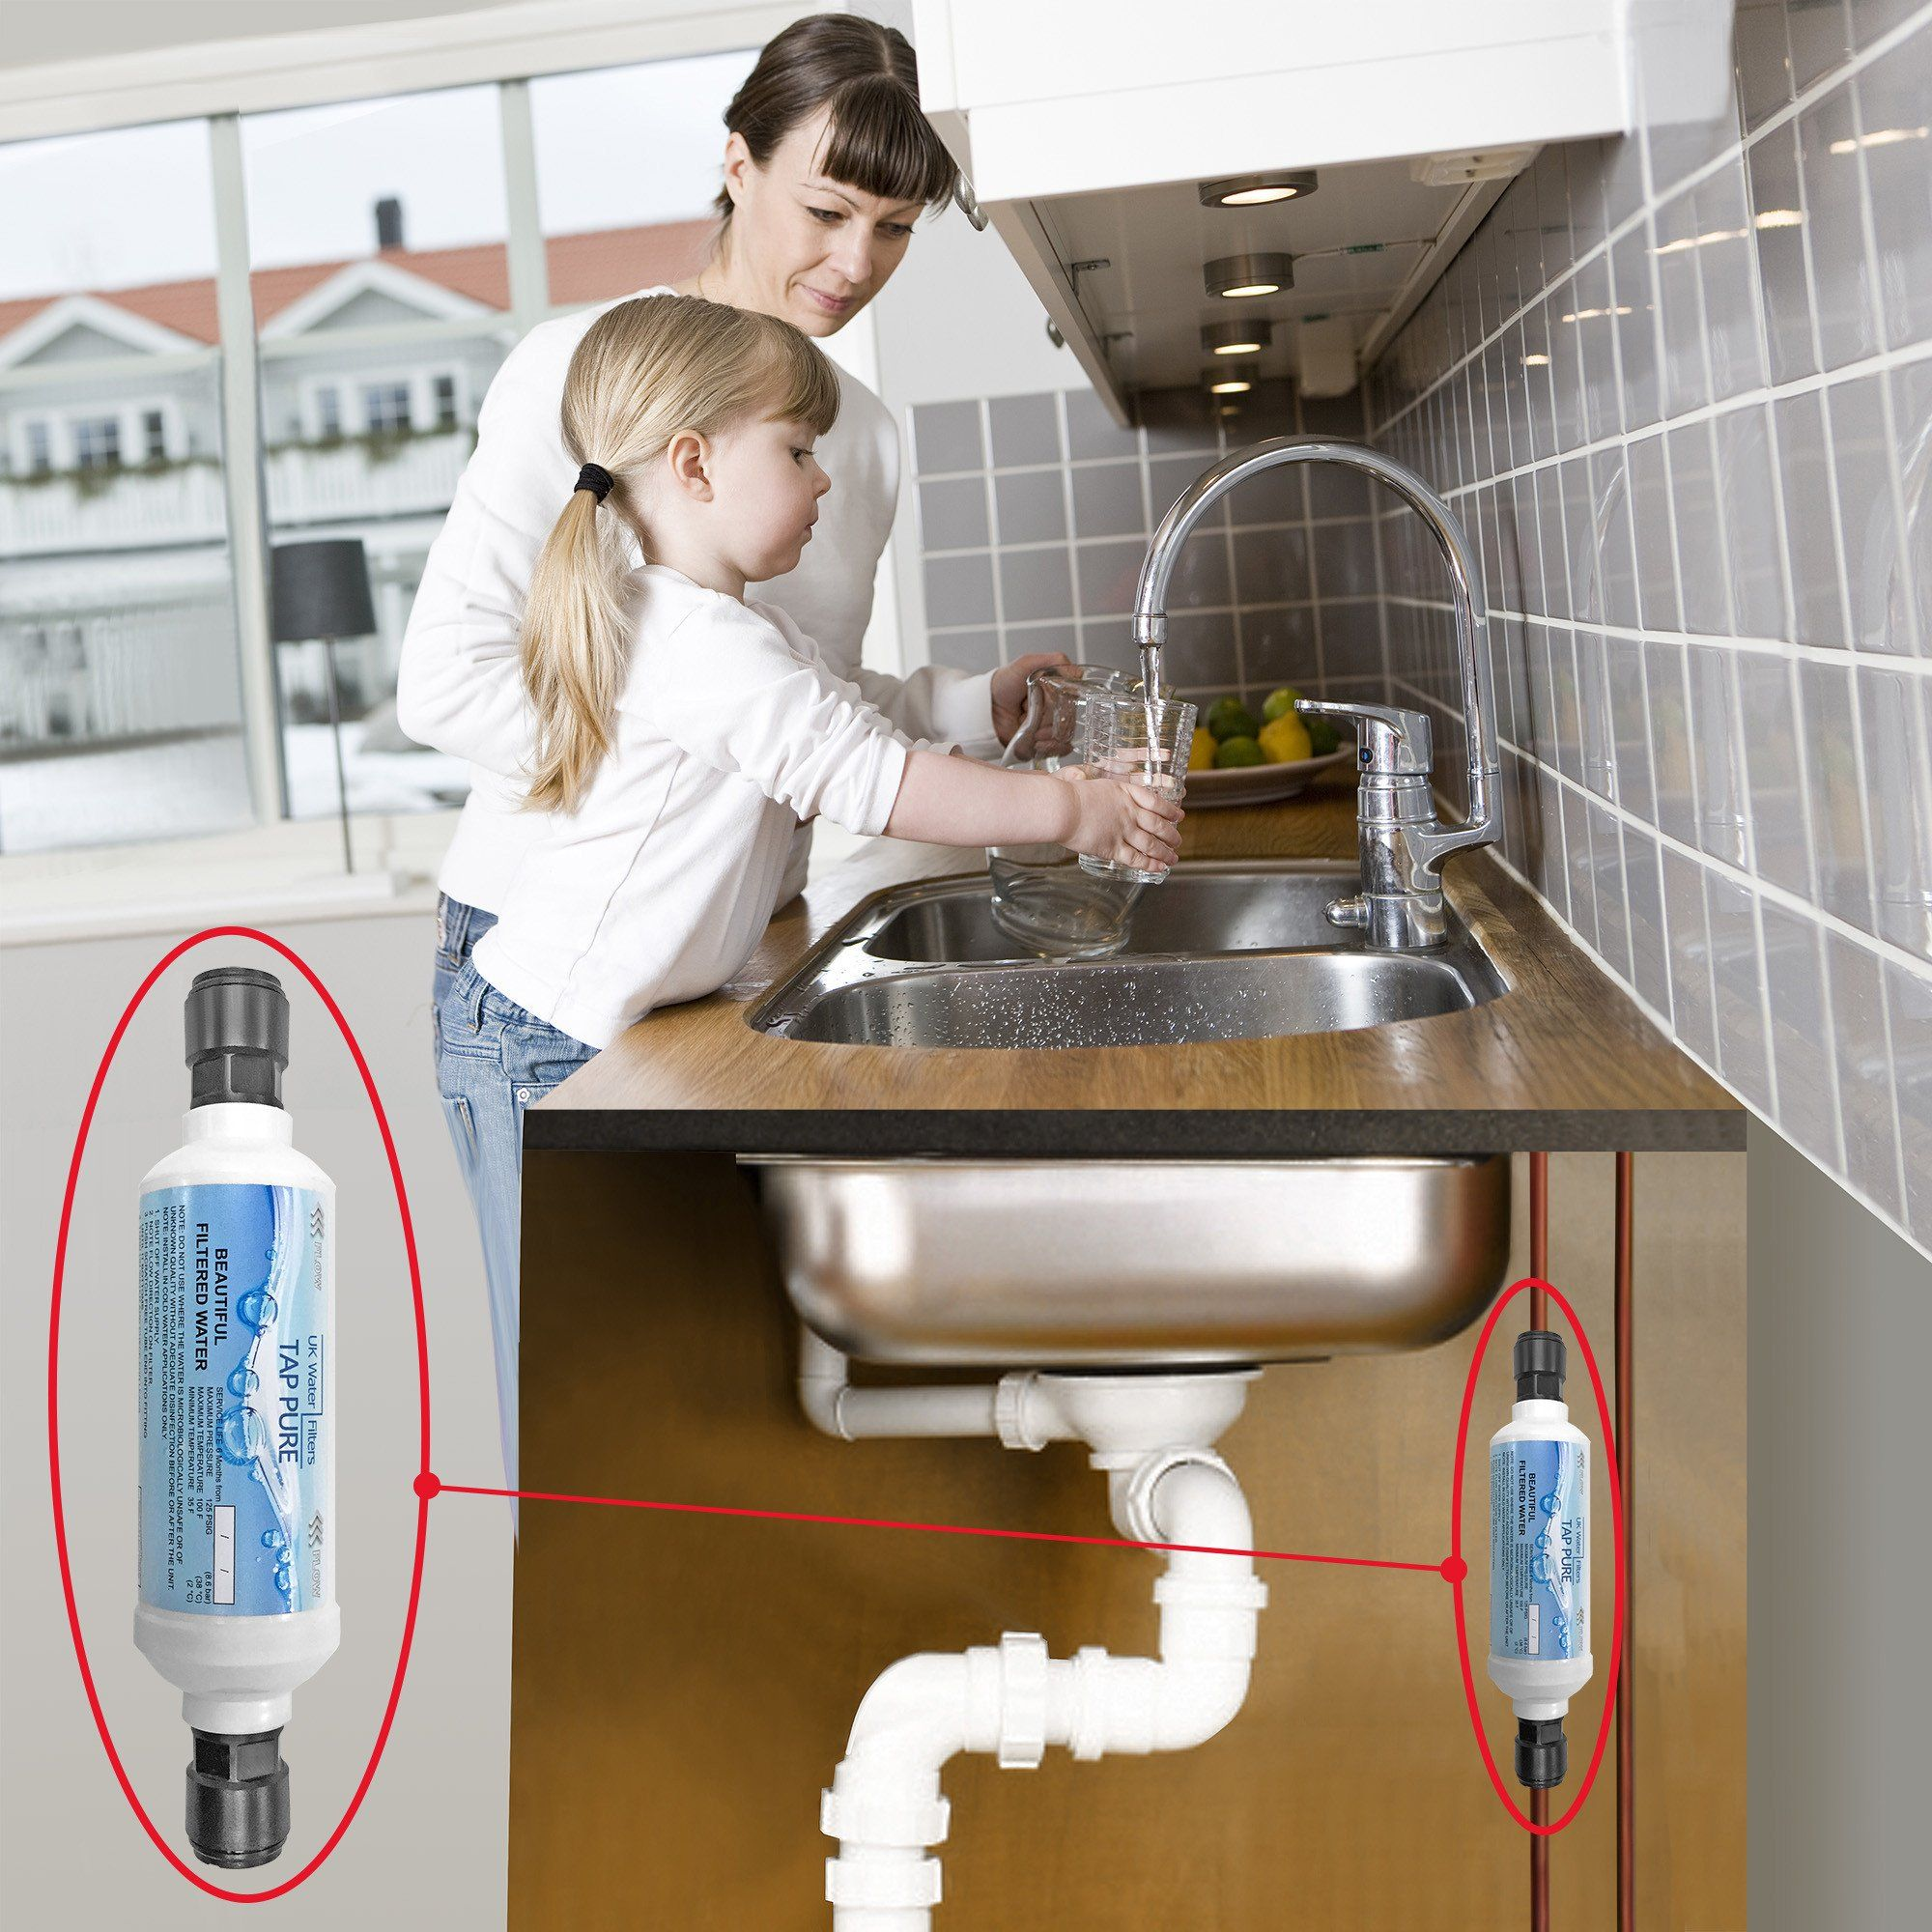 Keep Own Taps Undersink Water Filter Existing Normal Standard Tap Remains Tap Water Filter Water Filter This Or That Questions